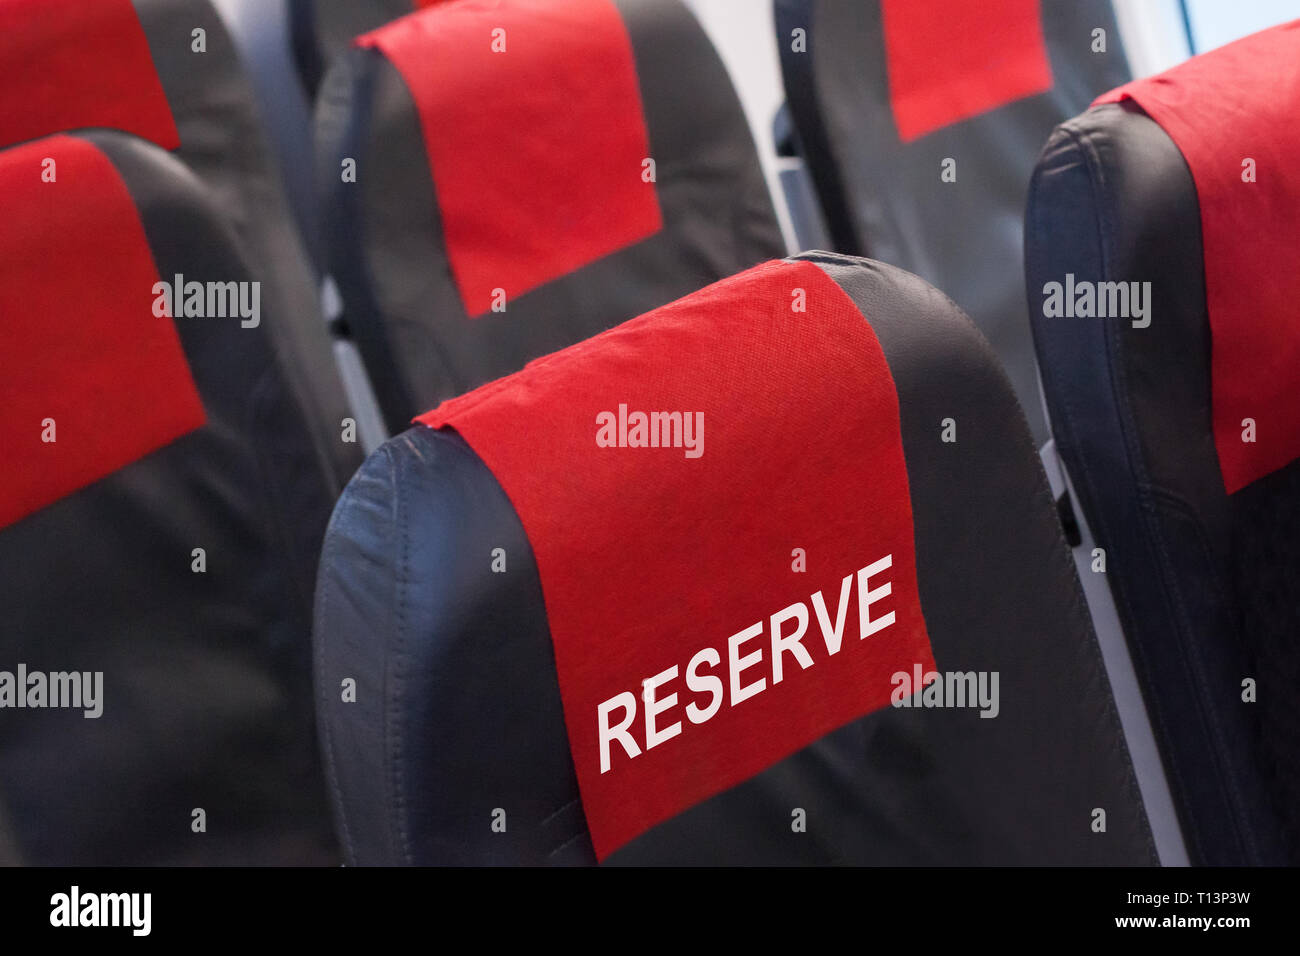 Early seat reservation, airline offers concept - Stock Image